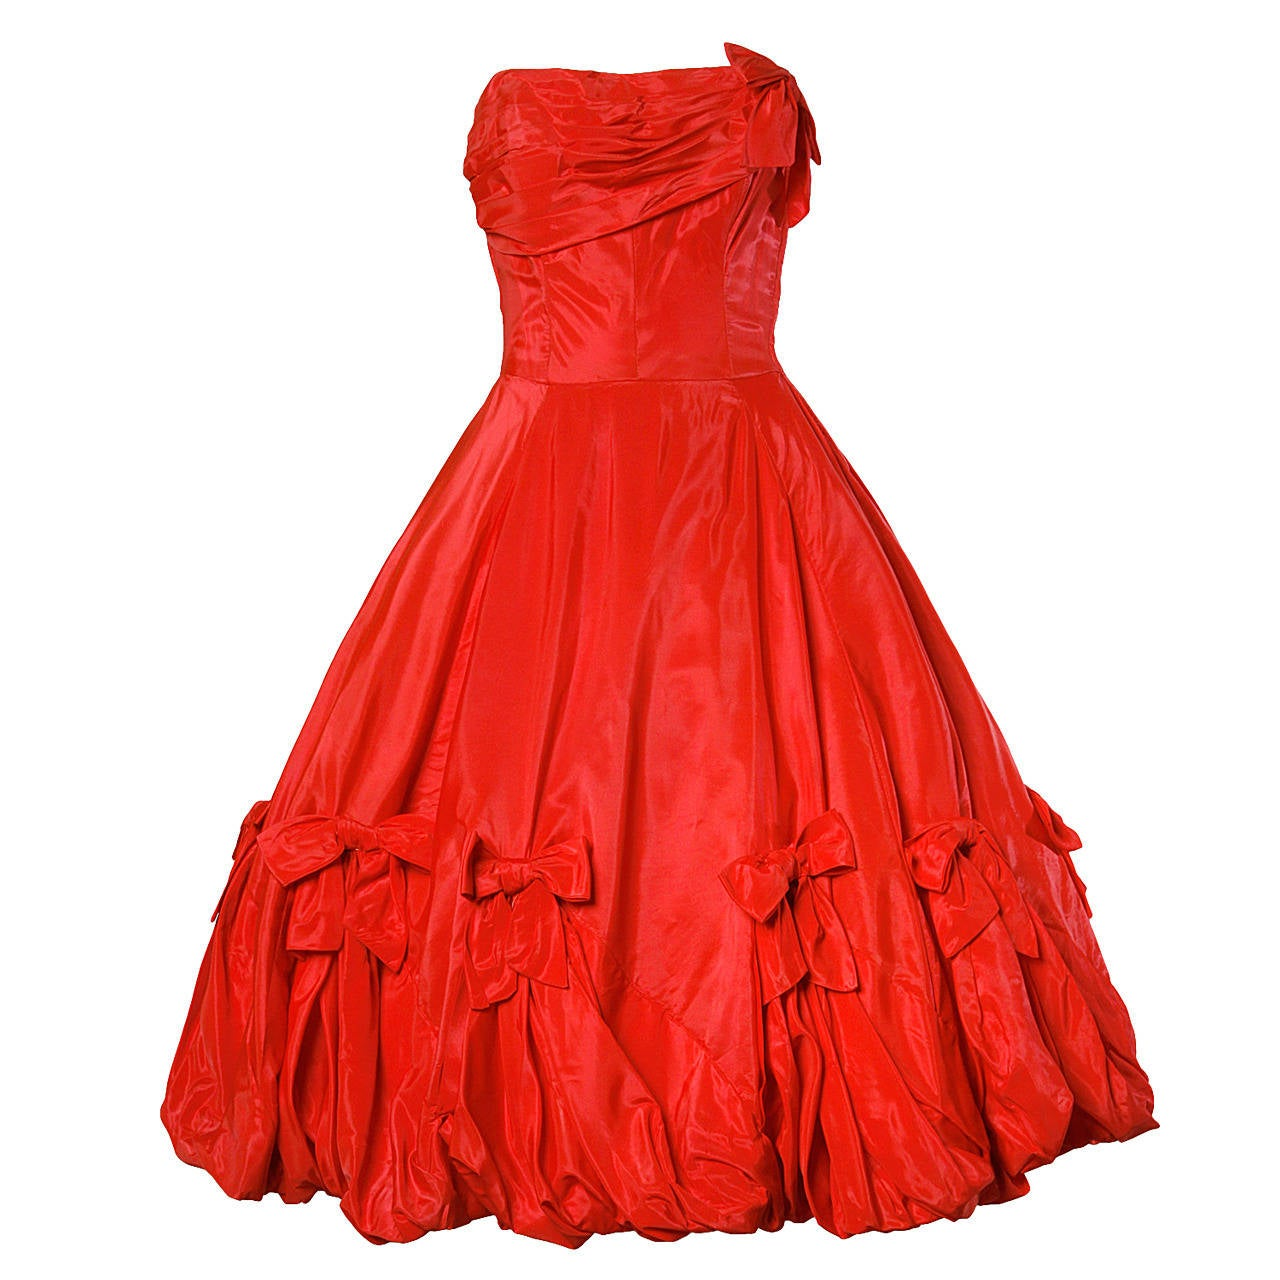 1950s Vintage Red Taffeta Full Sweep Party Dress with Bubble Hem 1